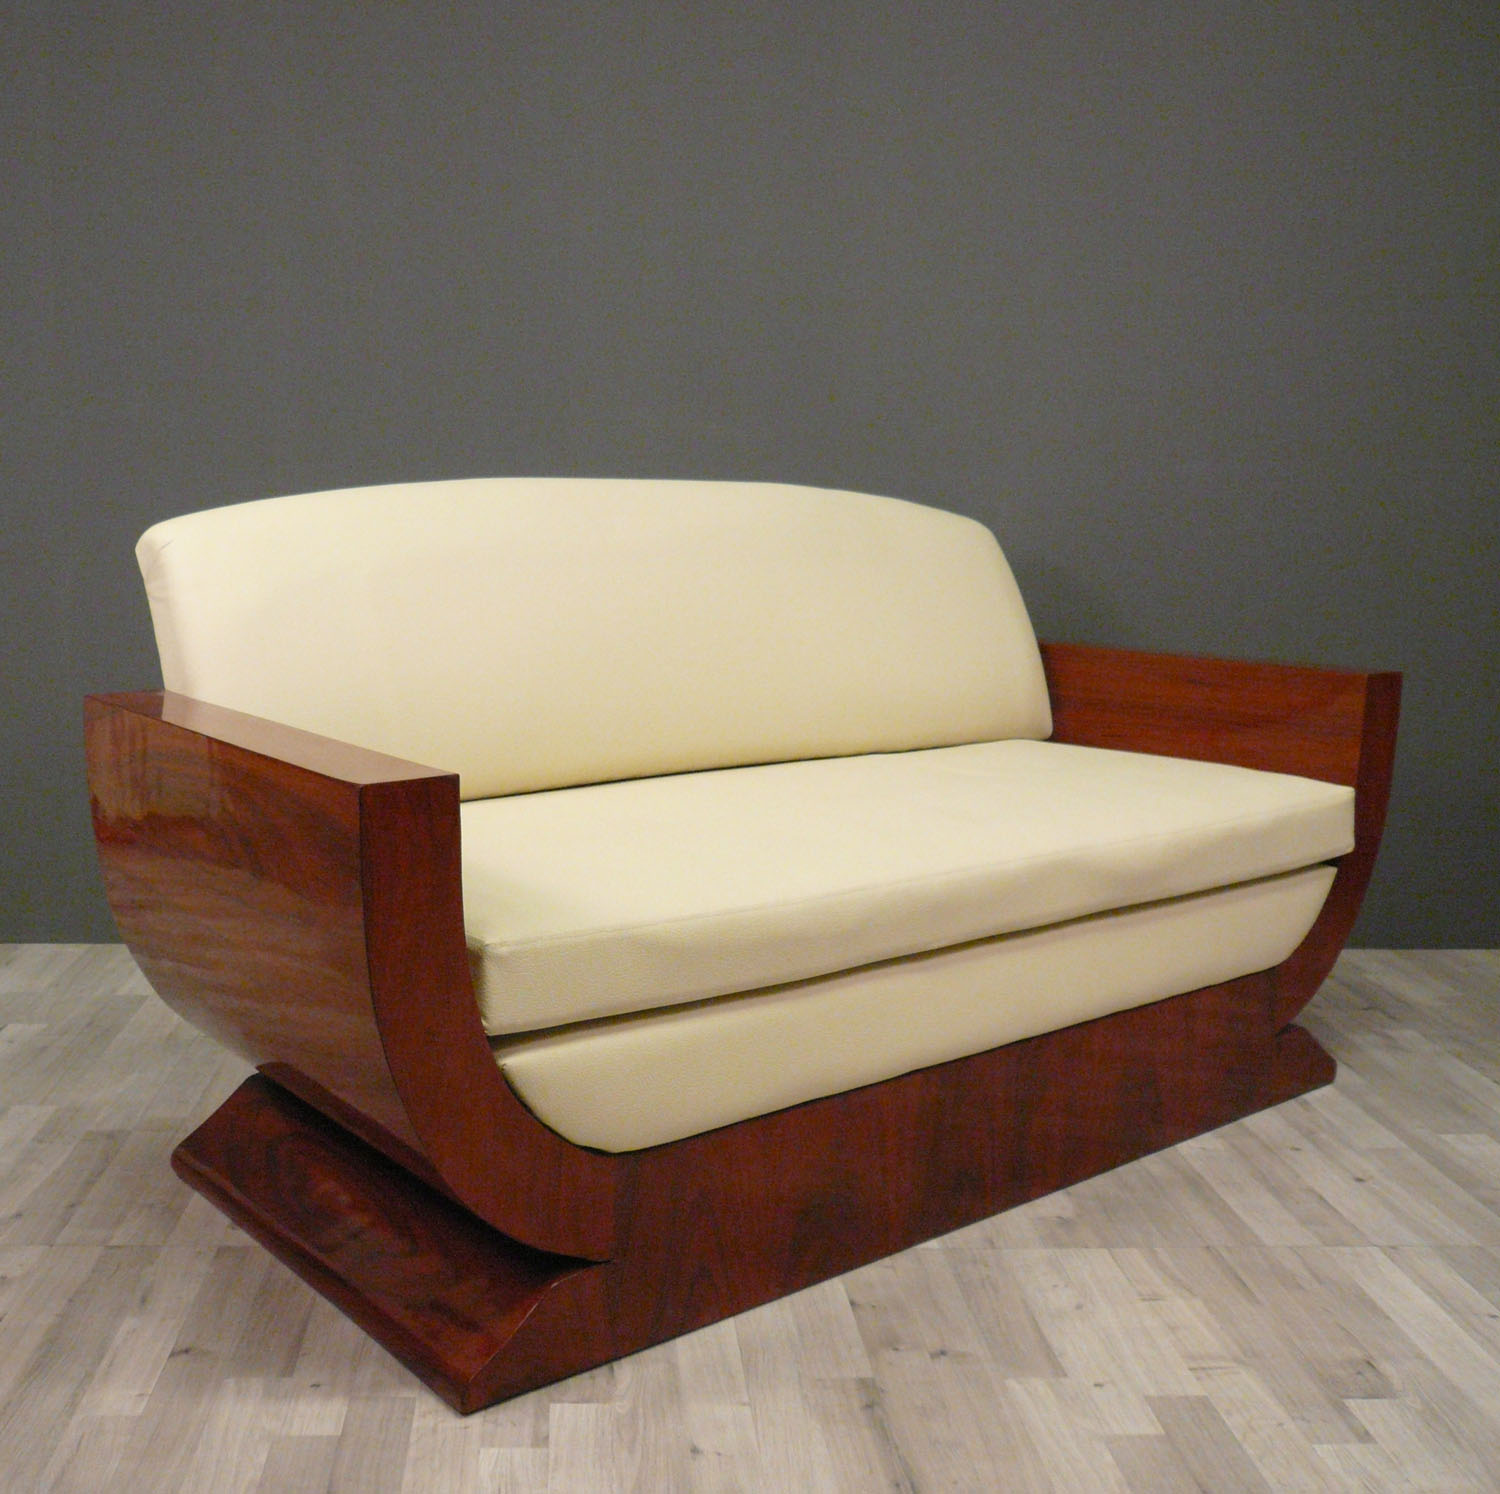 Art deco sofa art deco furniture - Meubles deco pas cher ...